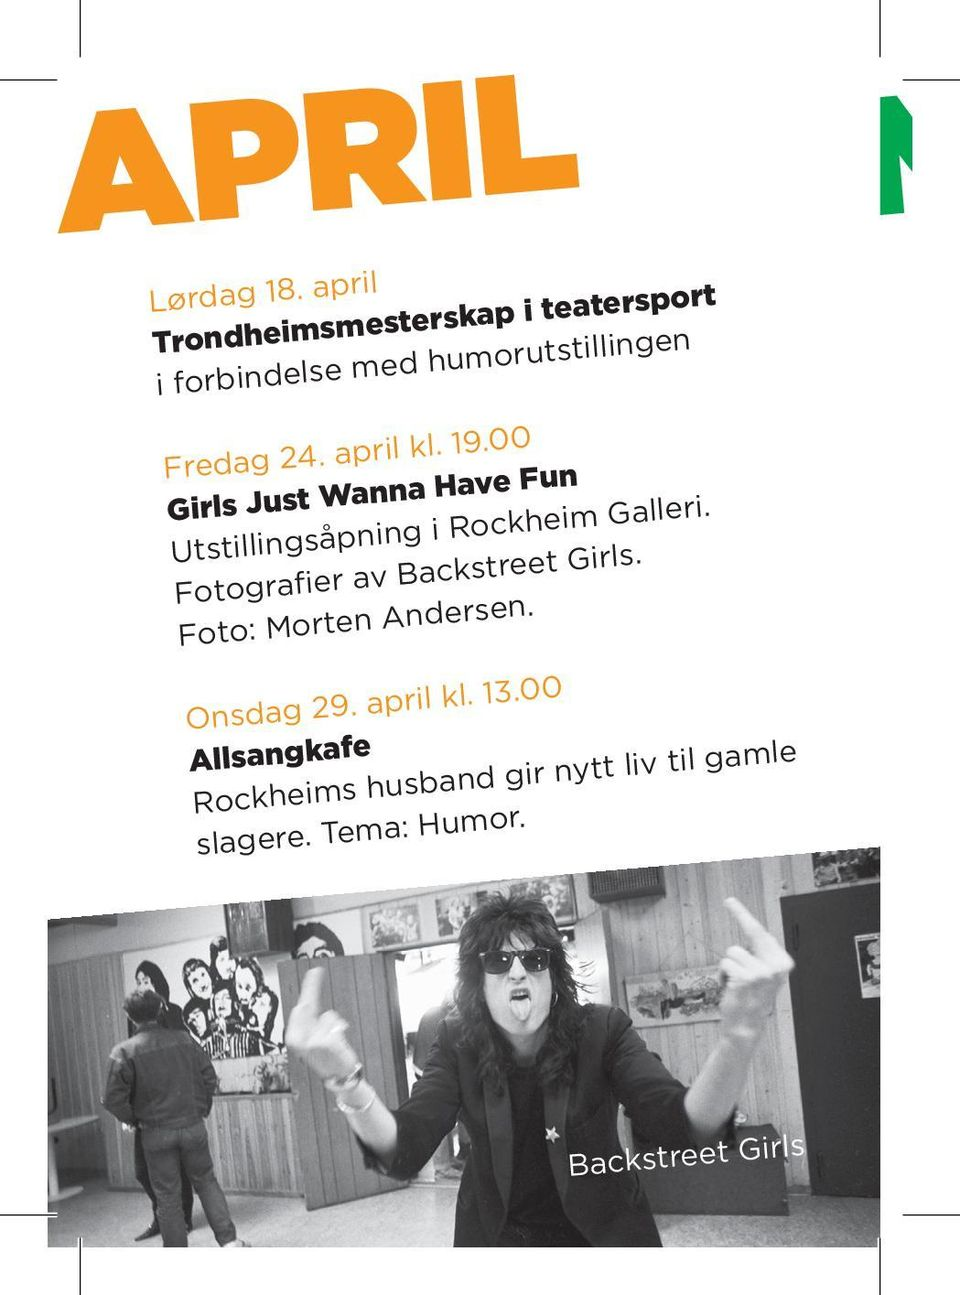 april kl. 19.00 Girls Just Wanna Have Fun Utstillingsåpning i Rockheim Galleri.